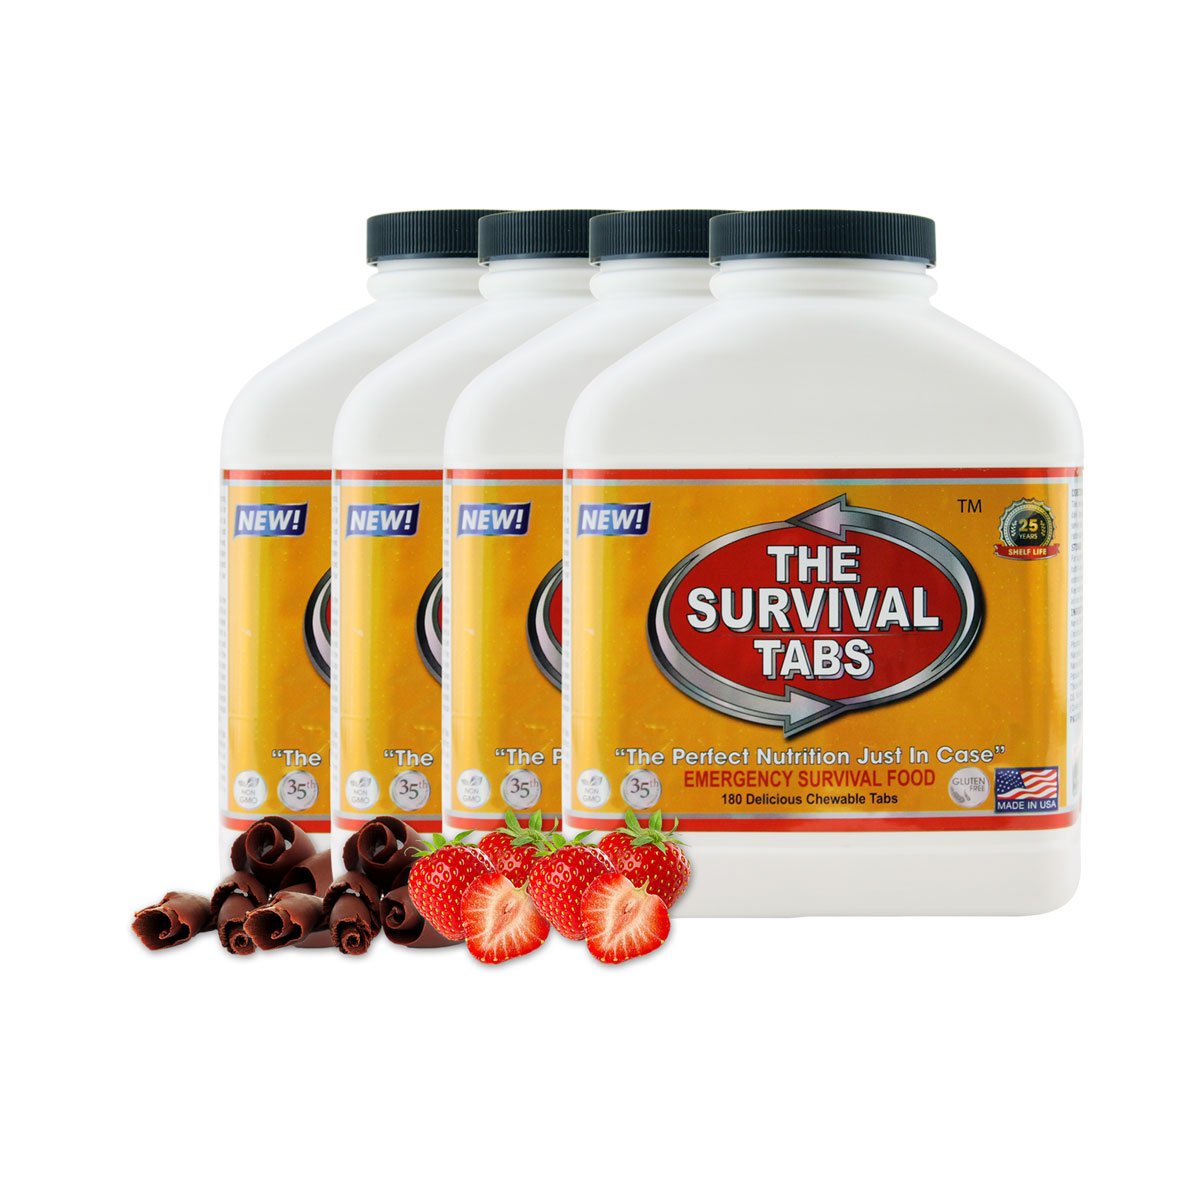 Survival Tabs 60 Day 720 Tabs Emergency Food Survival MREs Meal Replacement for Disaster Preparedness Gluten Free and Non-GMO 25 Years Shelf Life Long Term - Strawberry and Chocolate Flavor